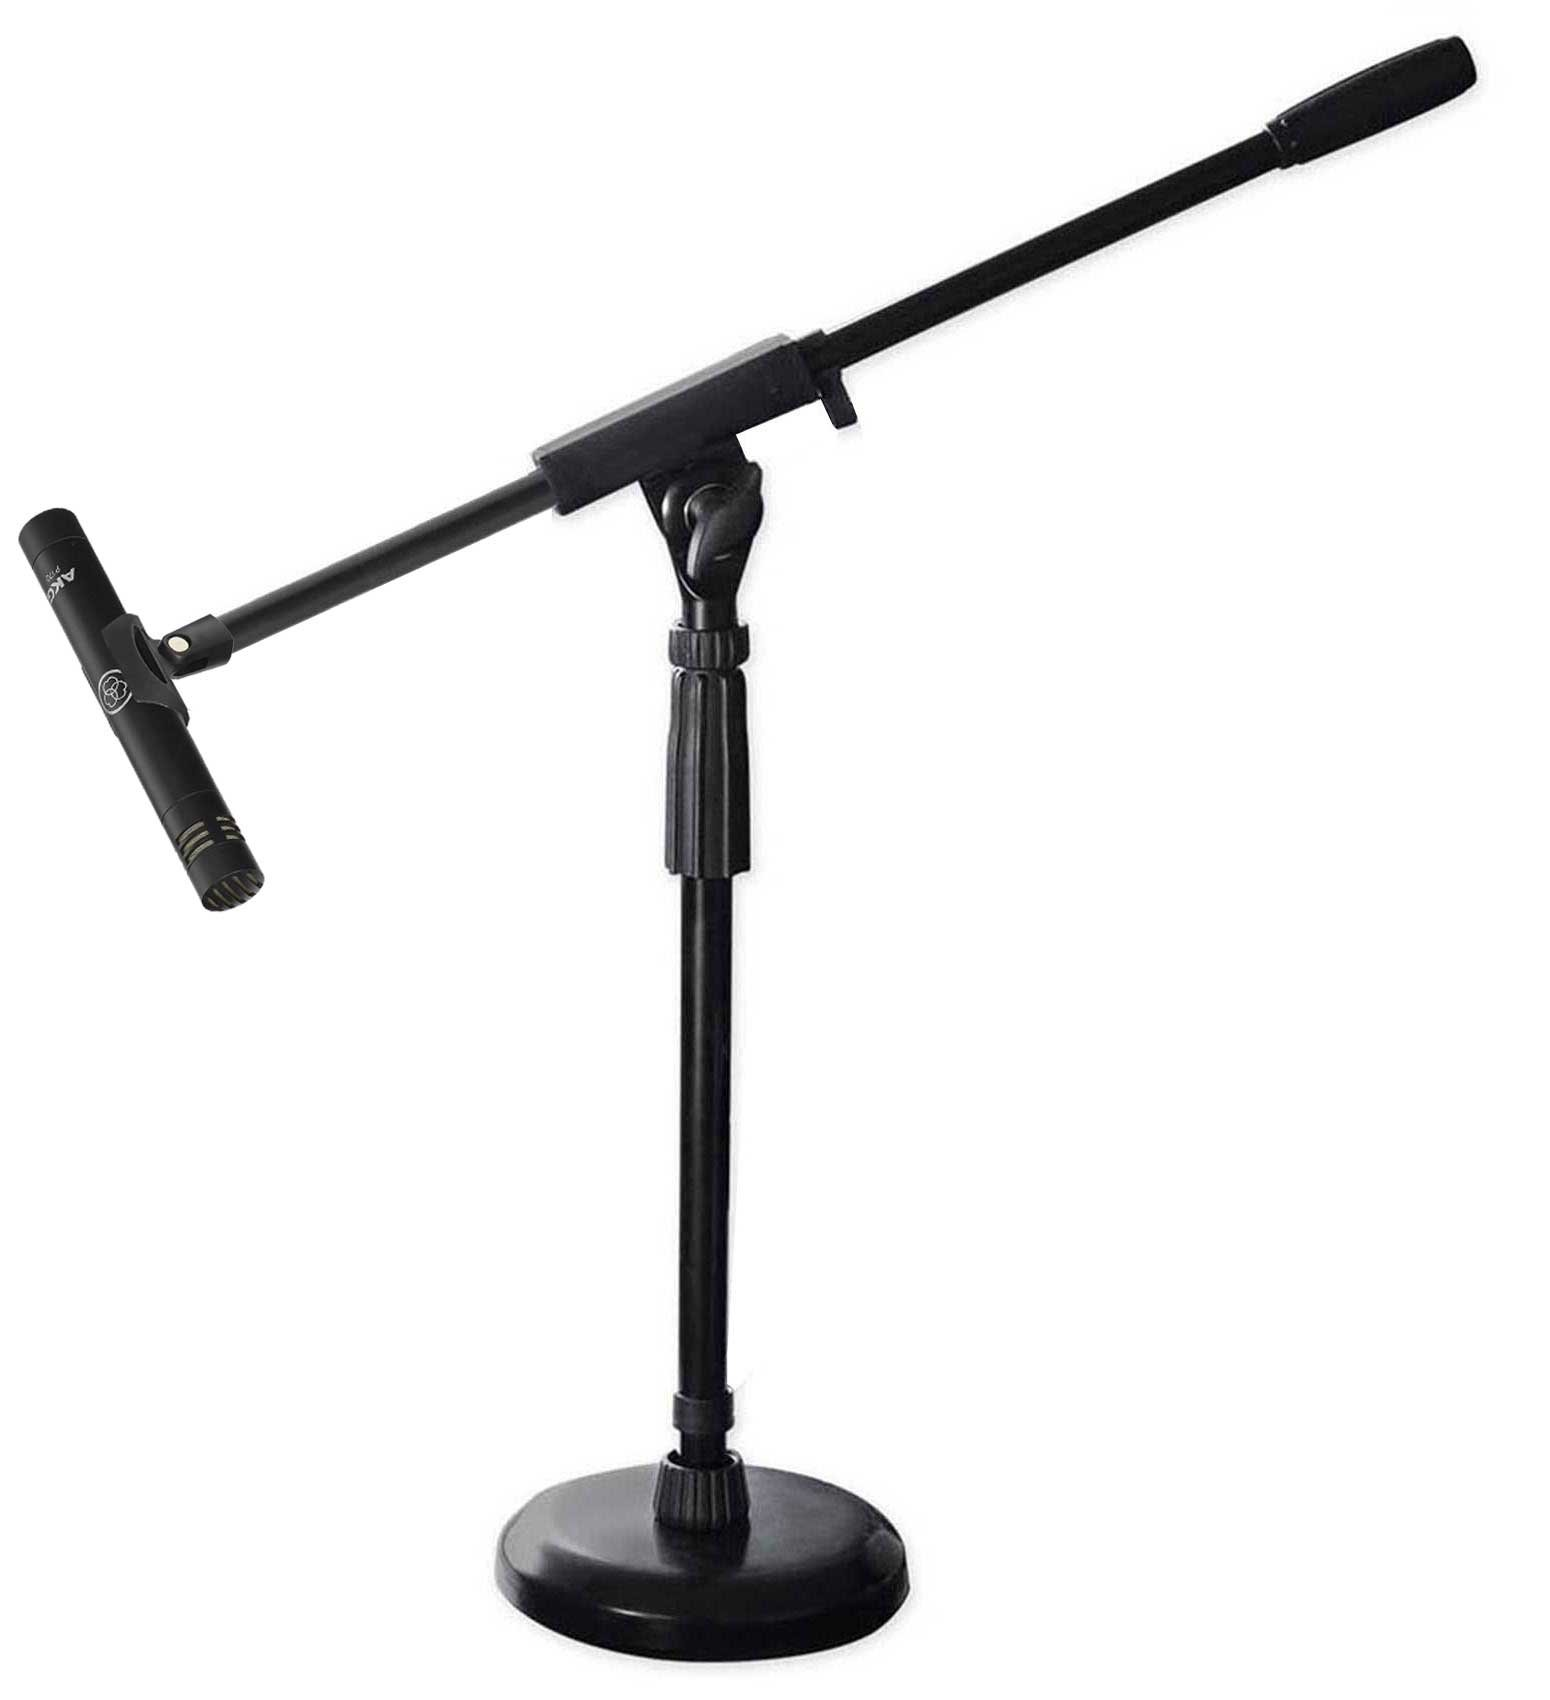 AKG P170 Studio Condenser Pencil Microphone Recording Instrument Drum Mic+Stand